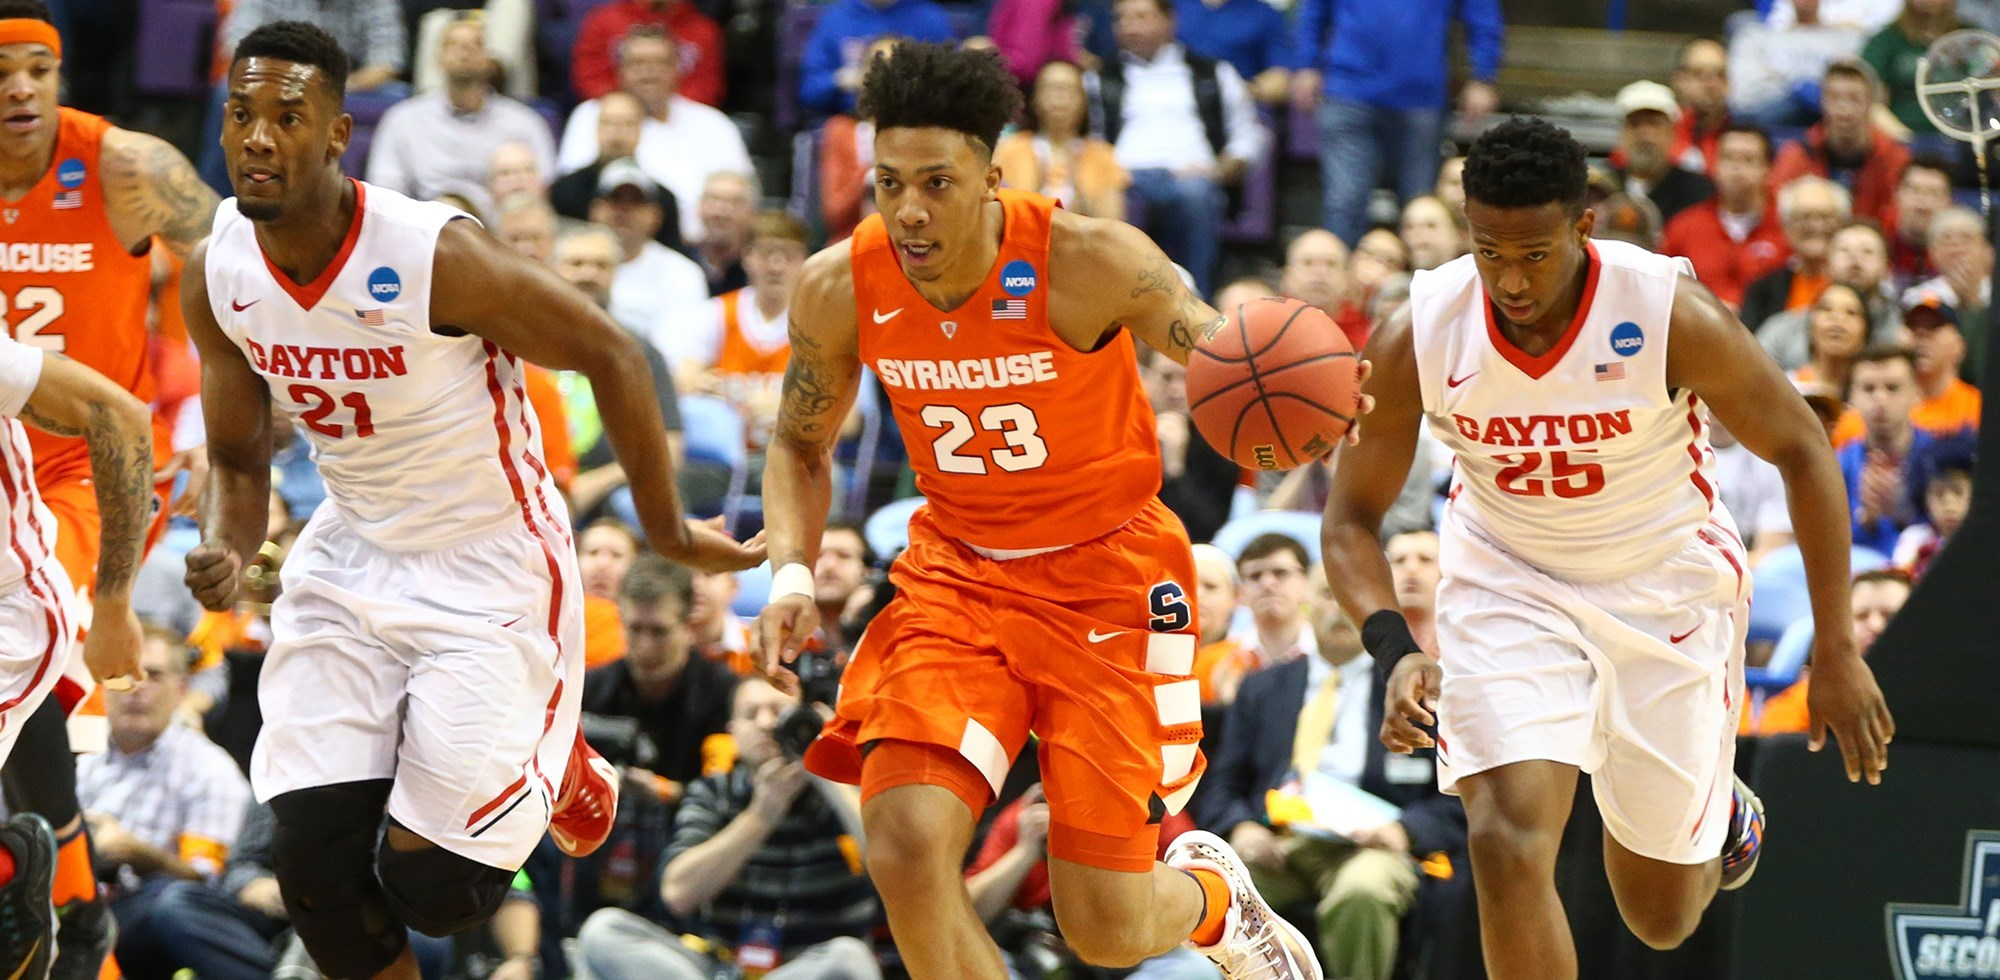 malachi richardson - men's basketball - syracuse university athletics